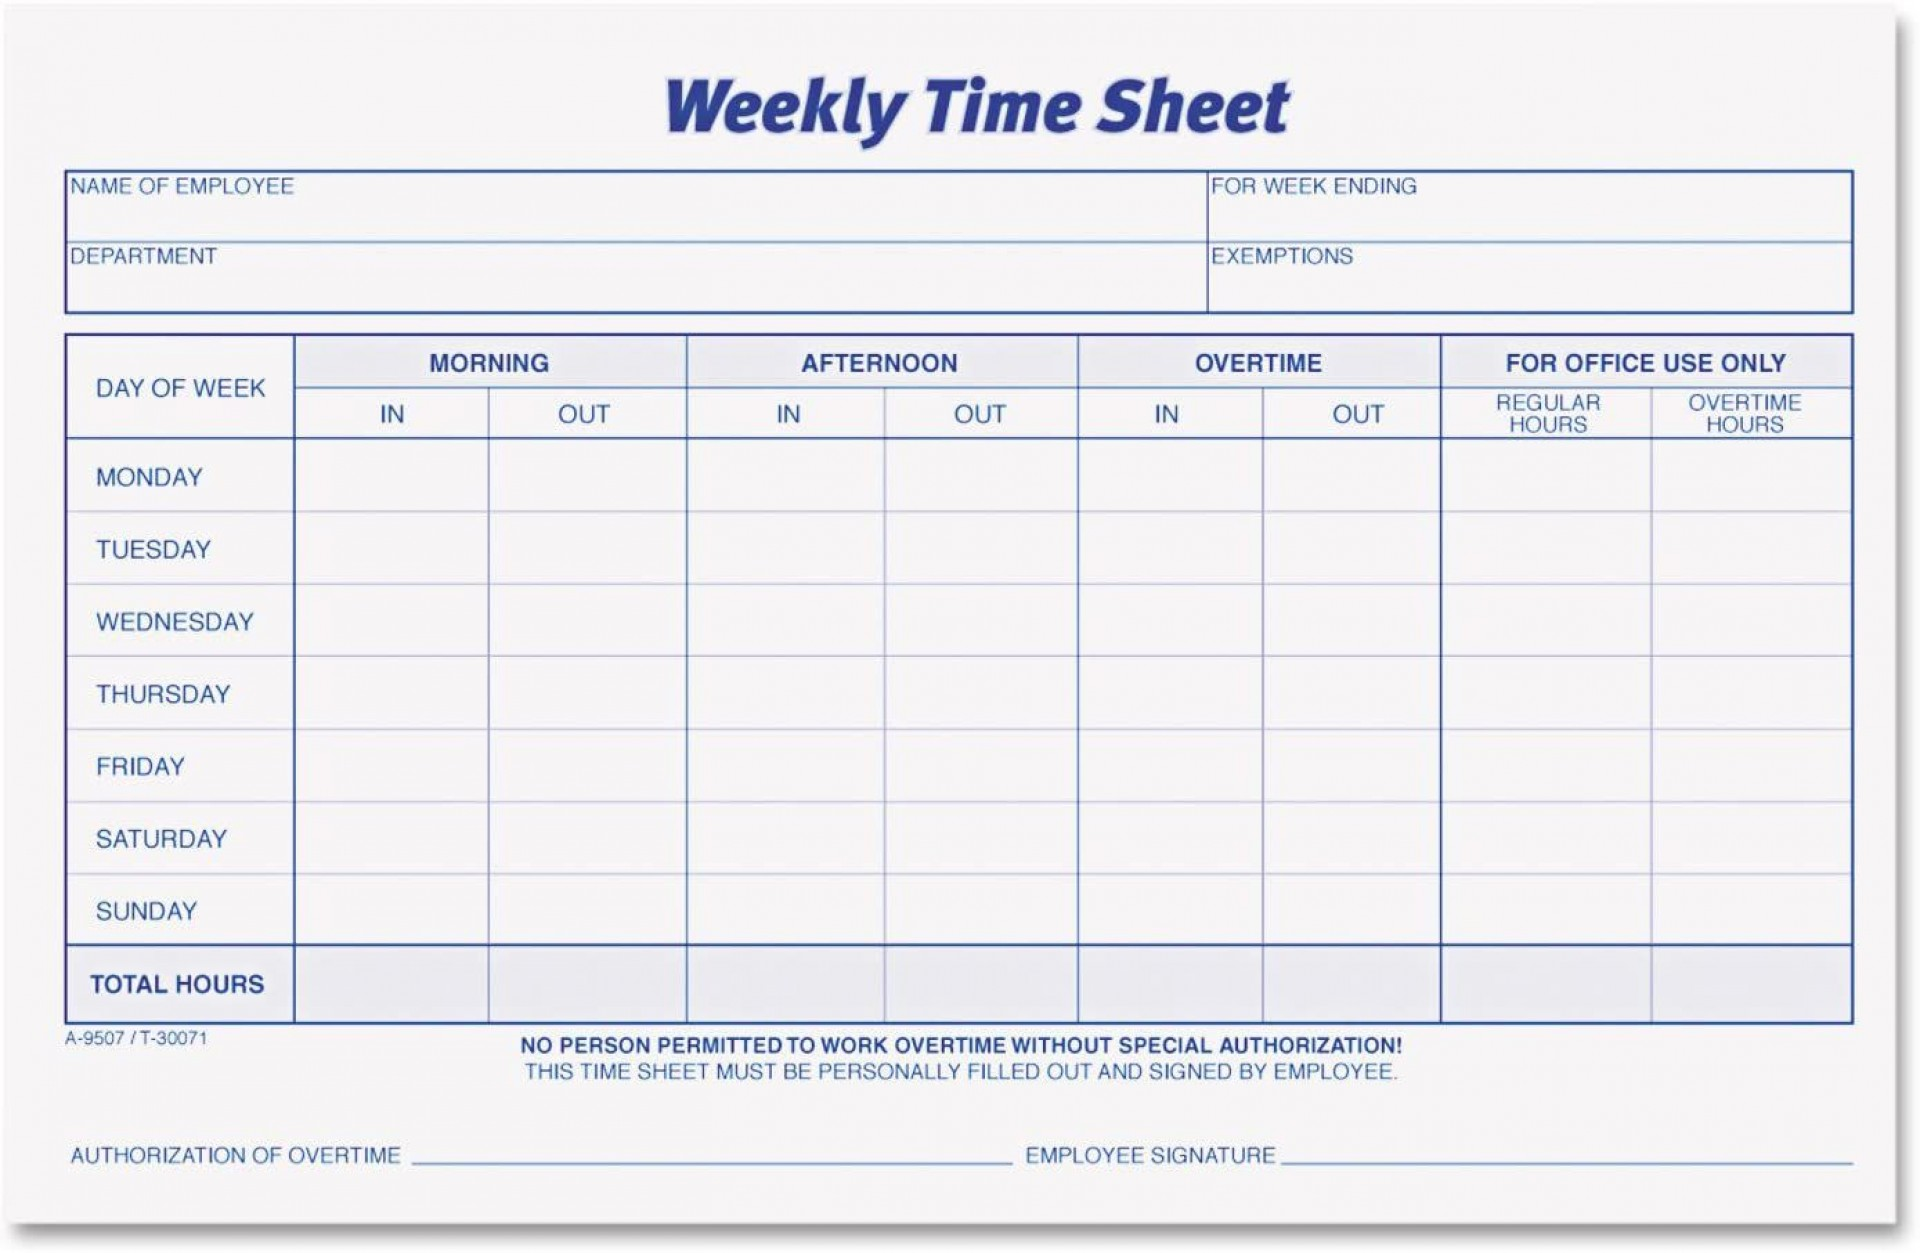 002 Wondrou Employee Time Card Sheet Picture  Template Free Excel1920